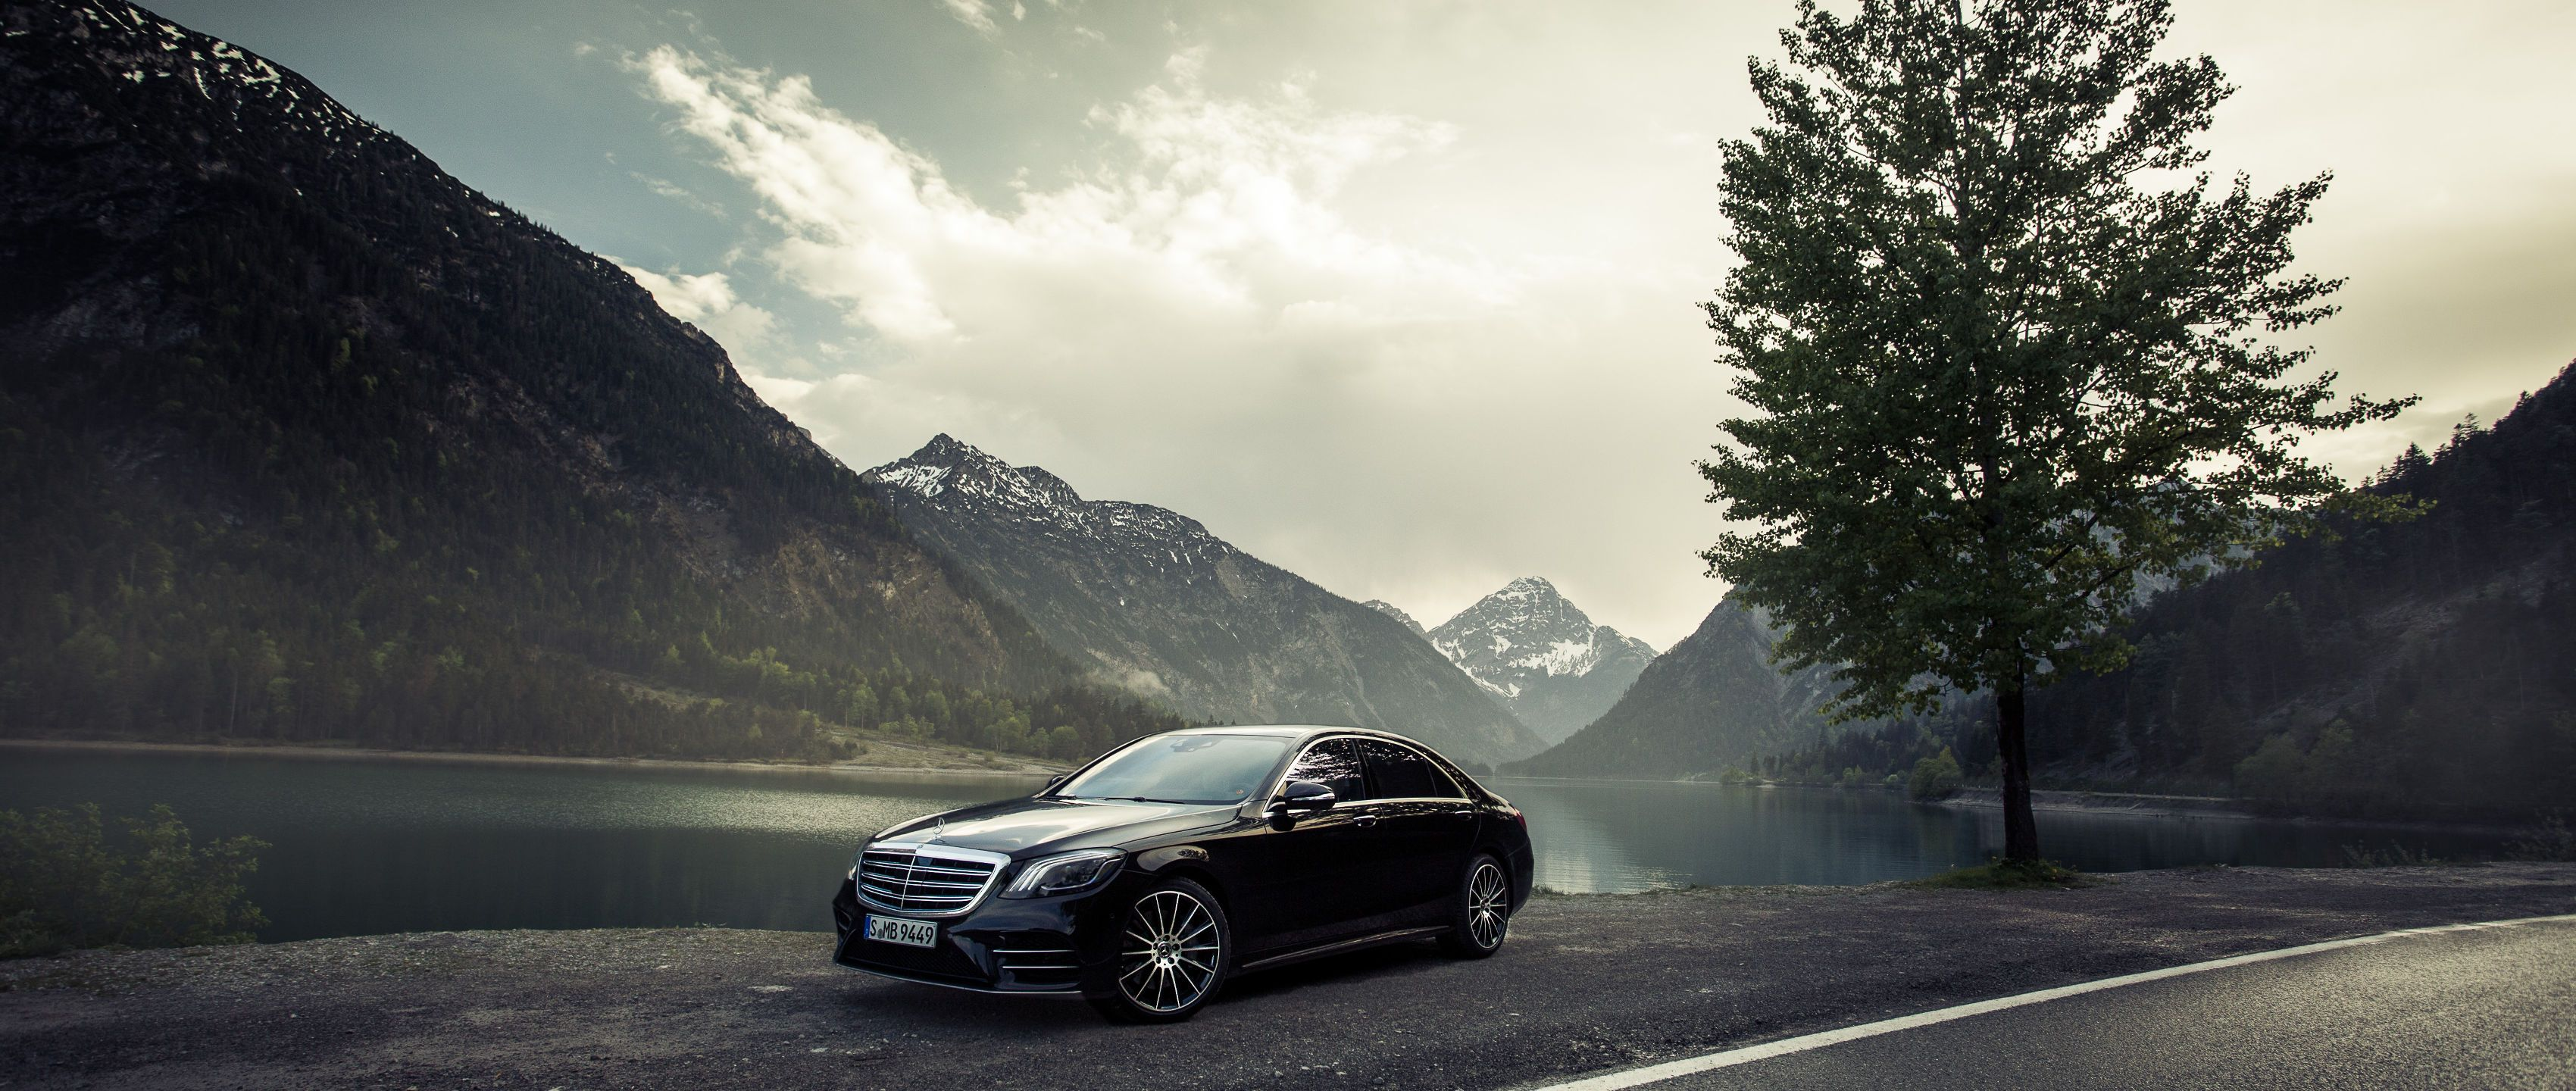 Mercedes S Class Wallpapers - Top Free ...